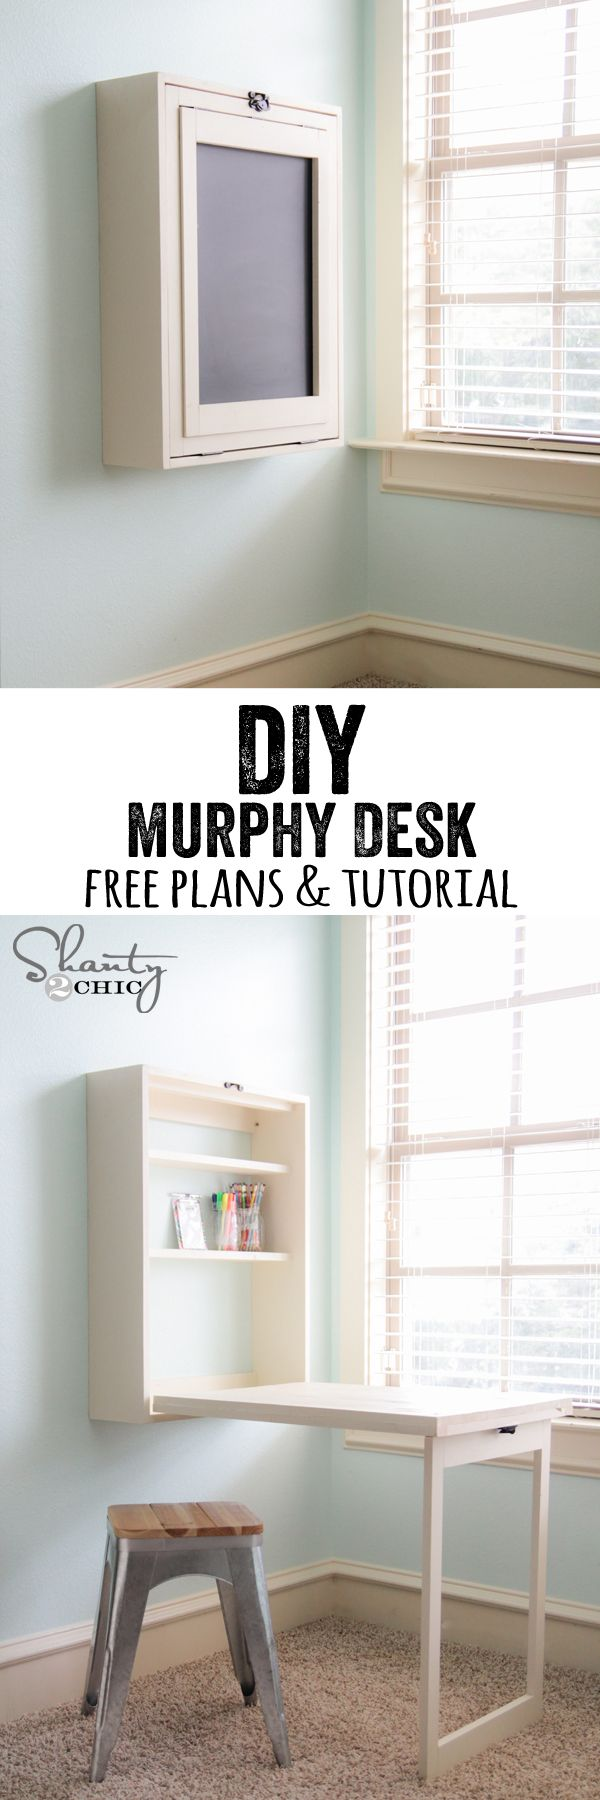 LOVE this DIY desk! Perfect for a small space and can be used for anything!